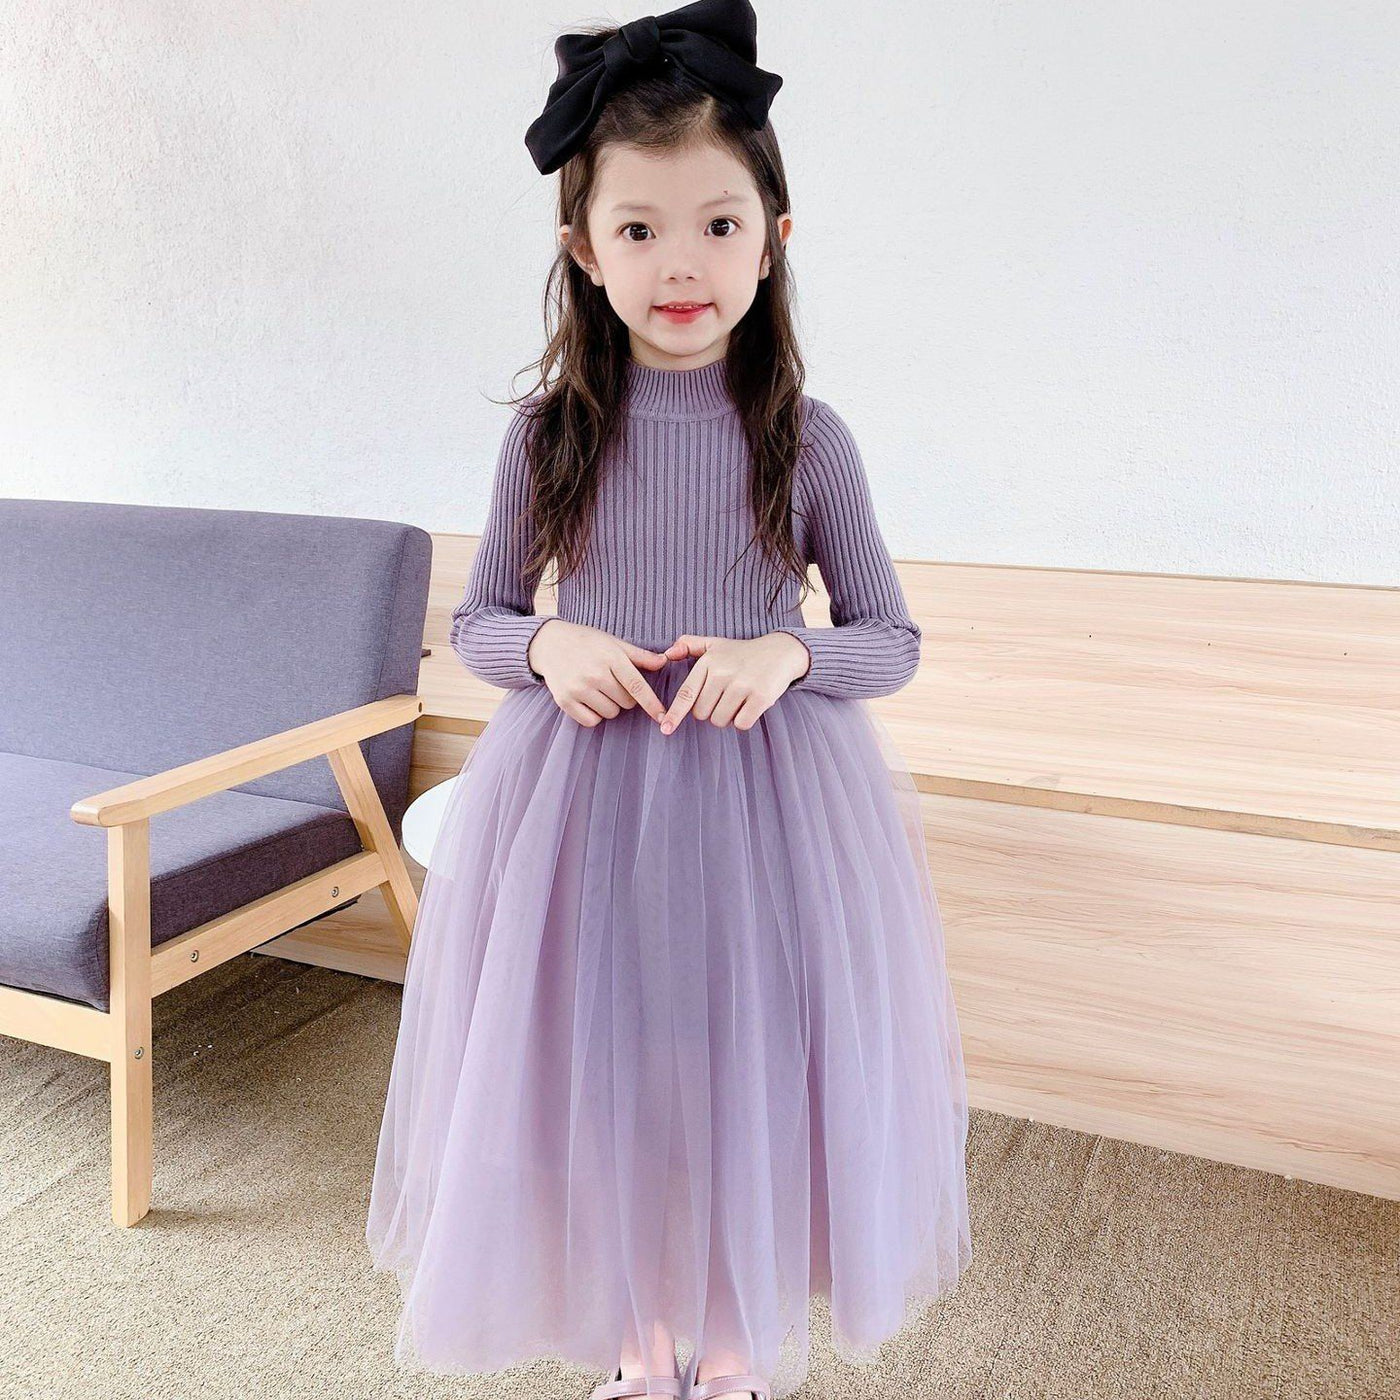 Alex + Nova Becca Maxi Tutu Dress - Alex + Nova